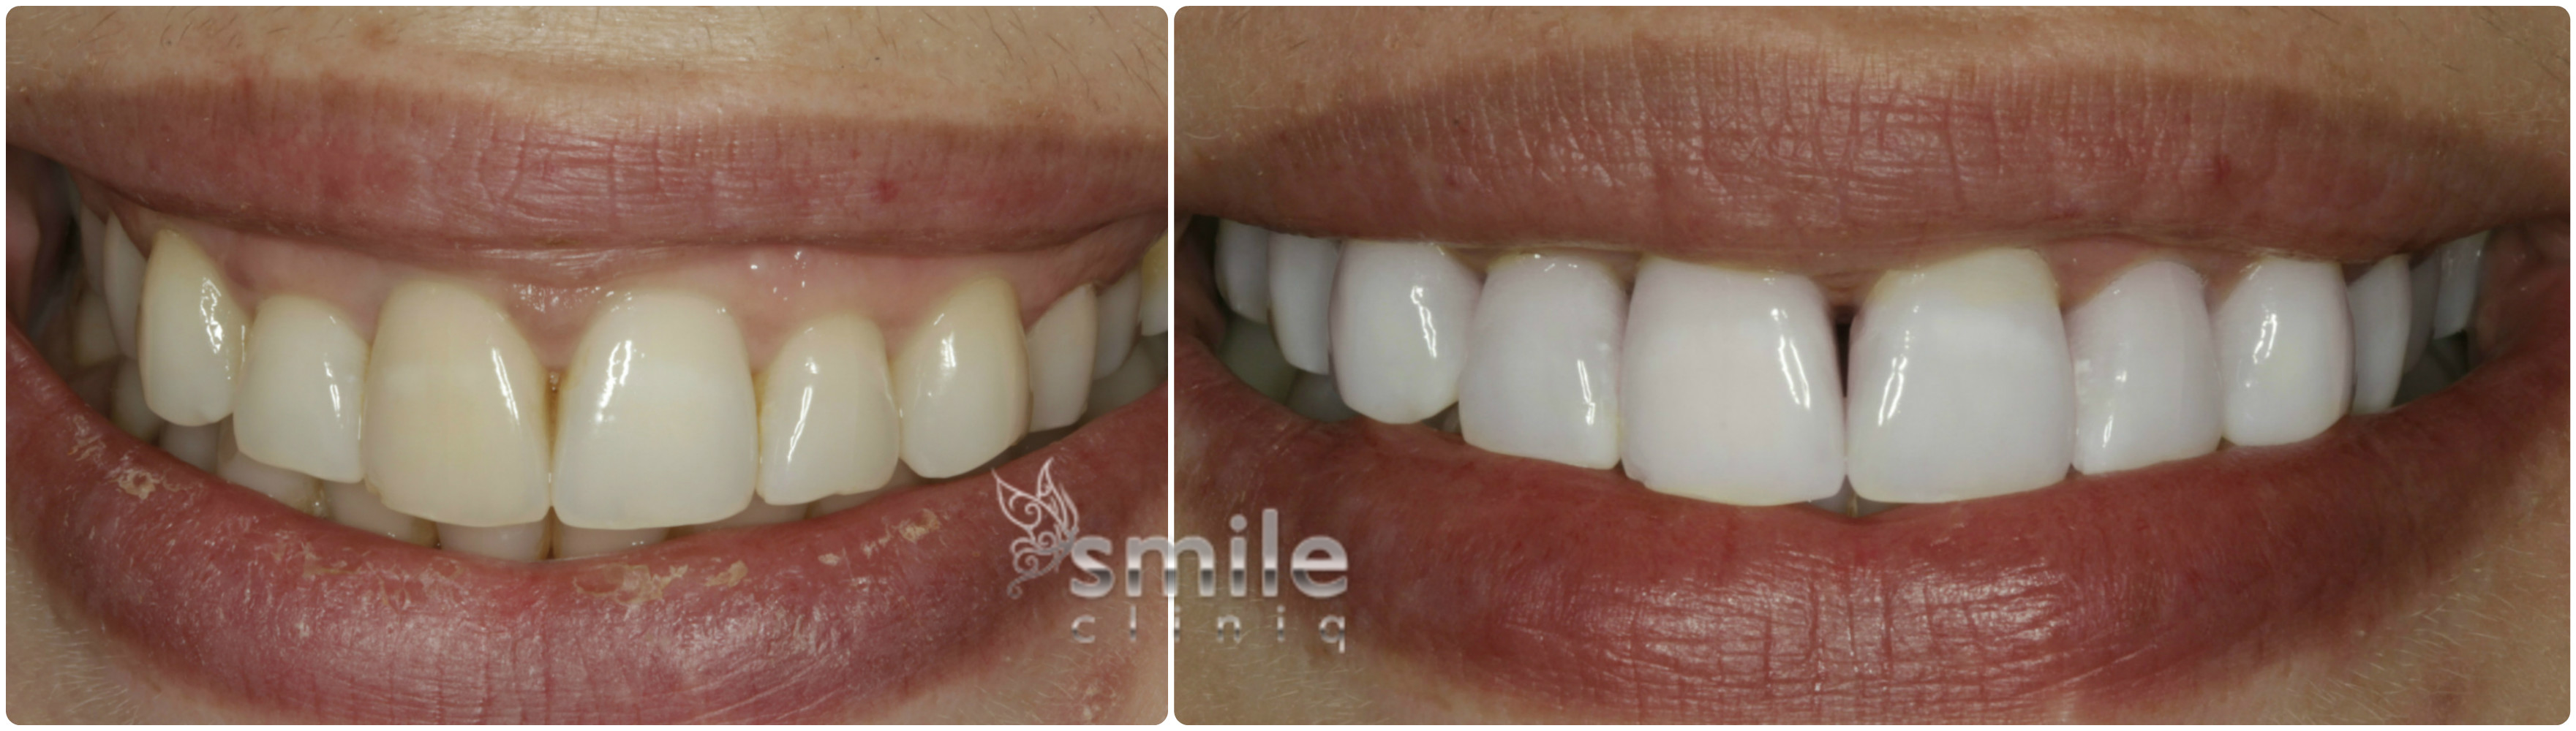 Enlighten Tooth Whitening Before and After